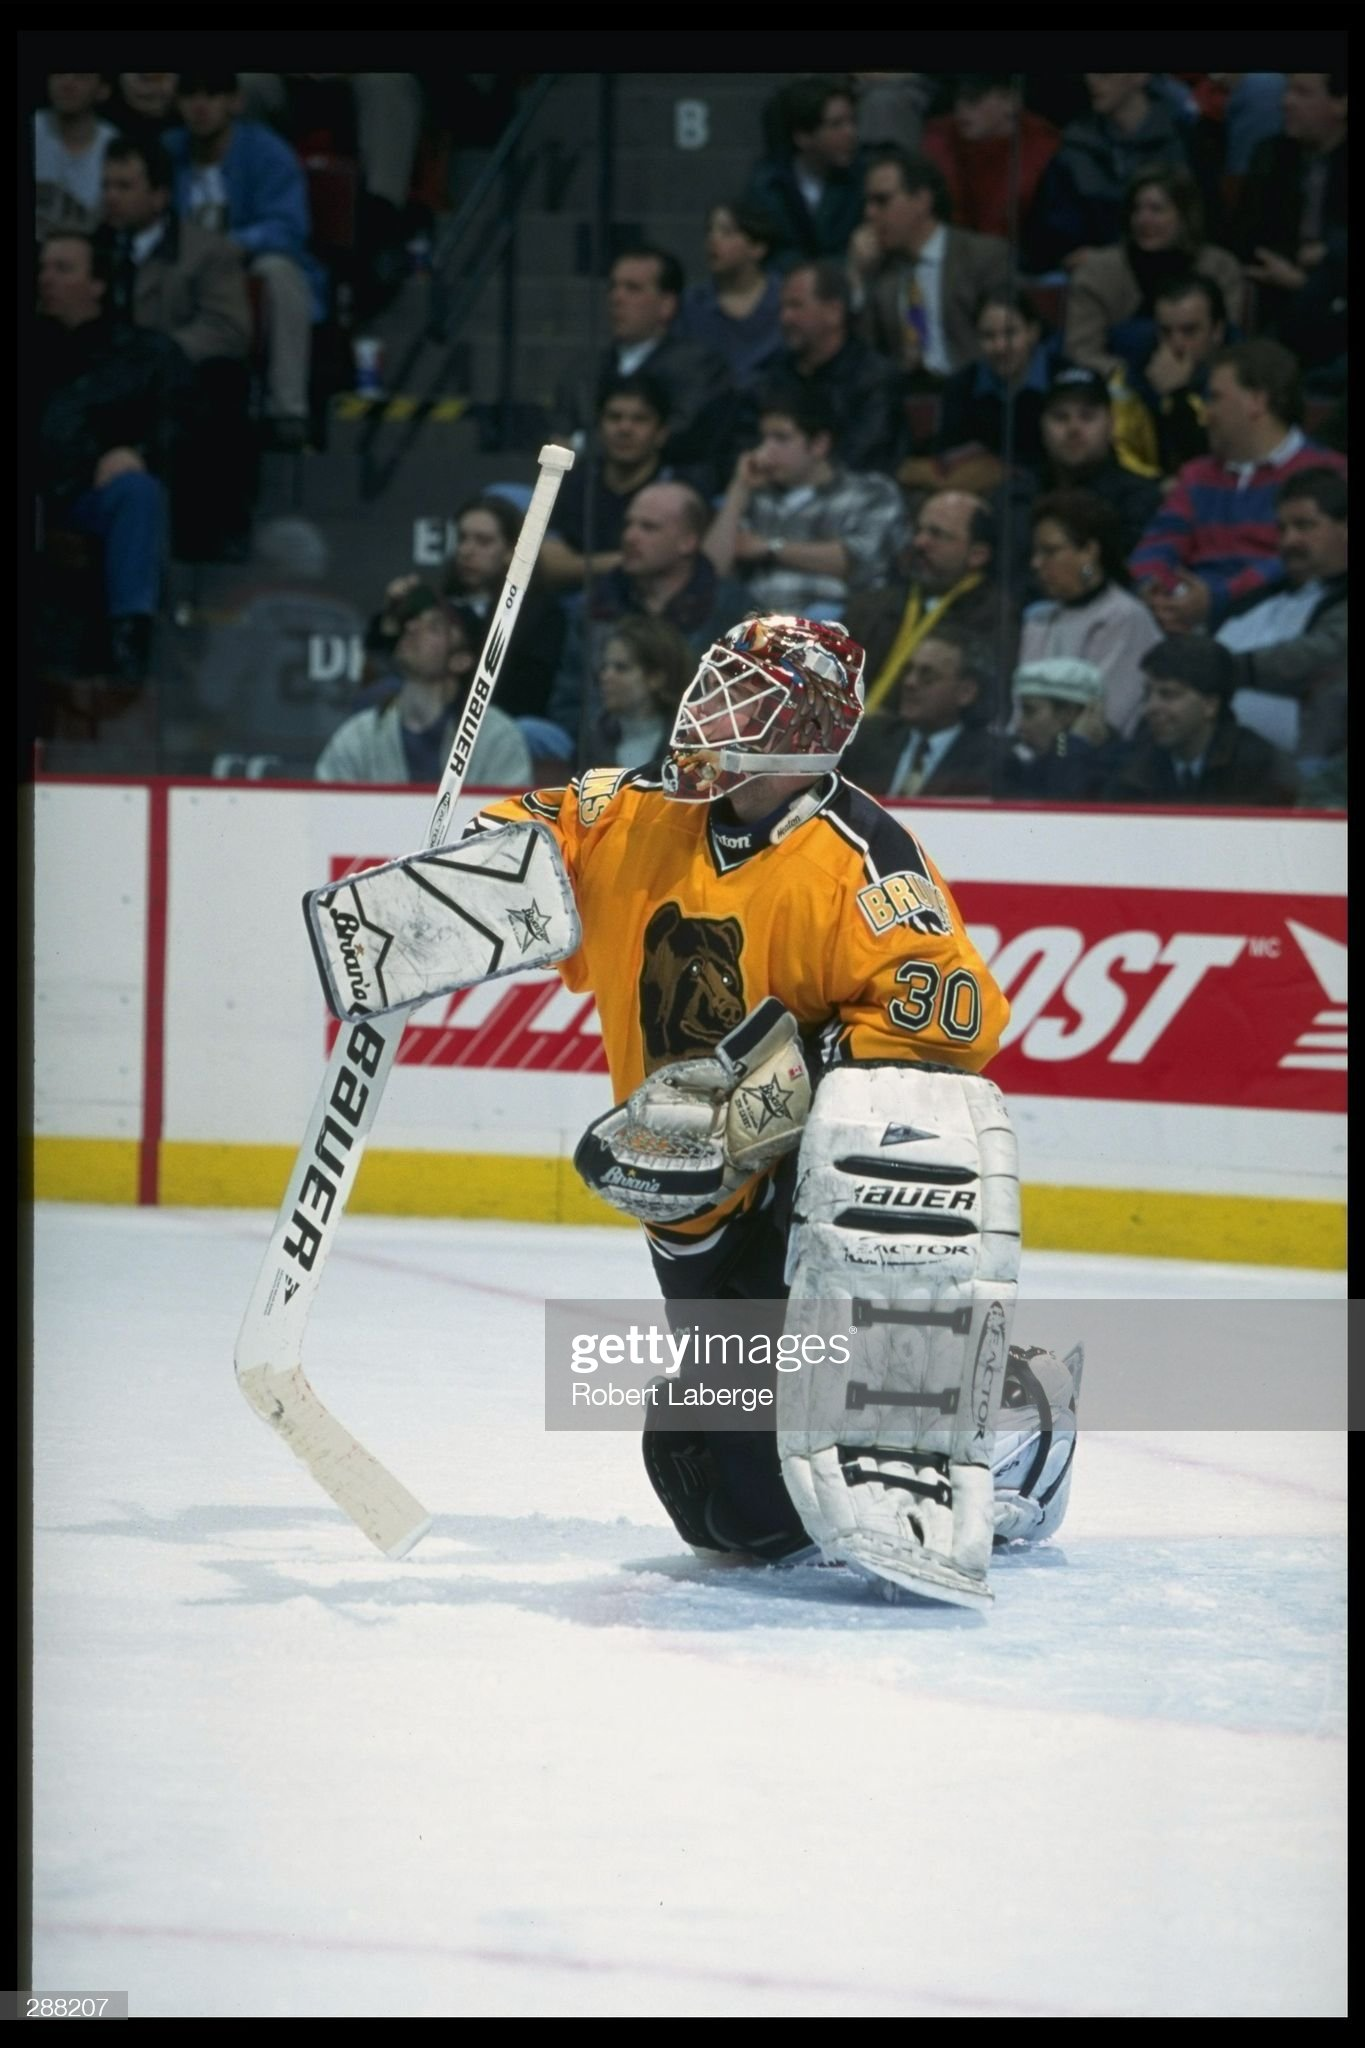 mar-1997-goaltender-jim-carey-of-the-bos